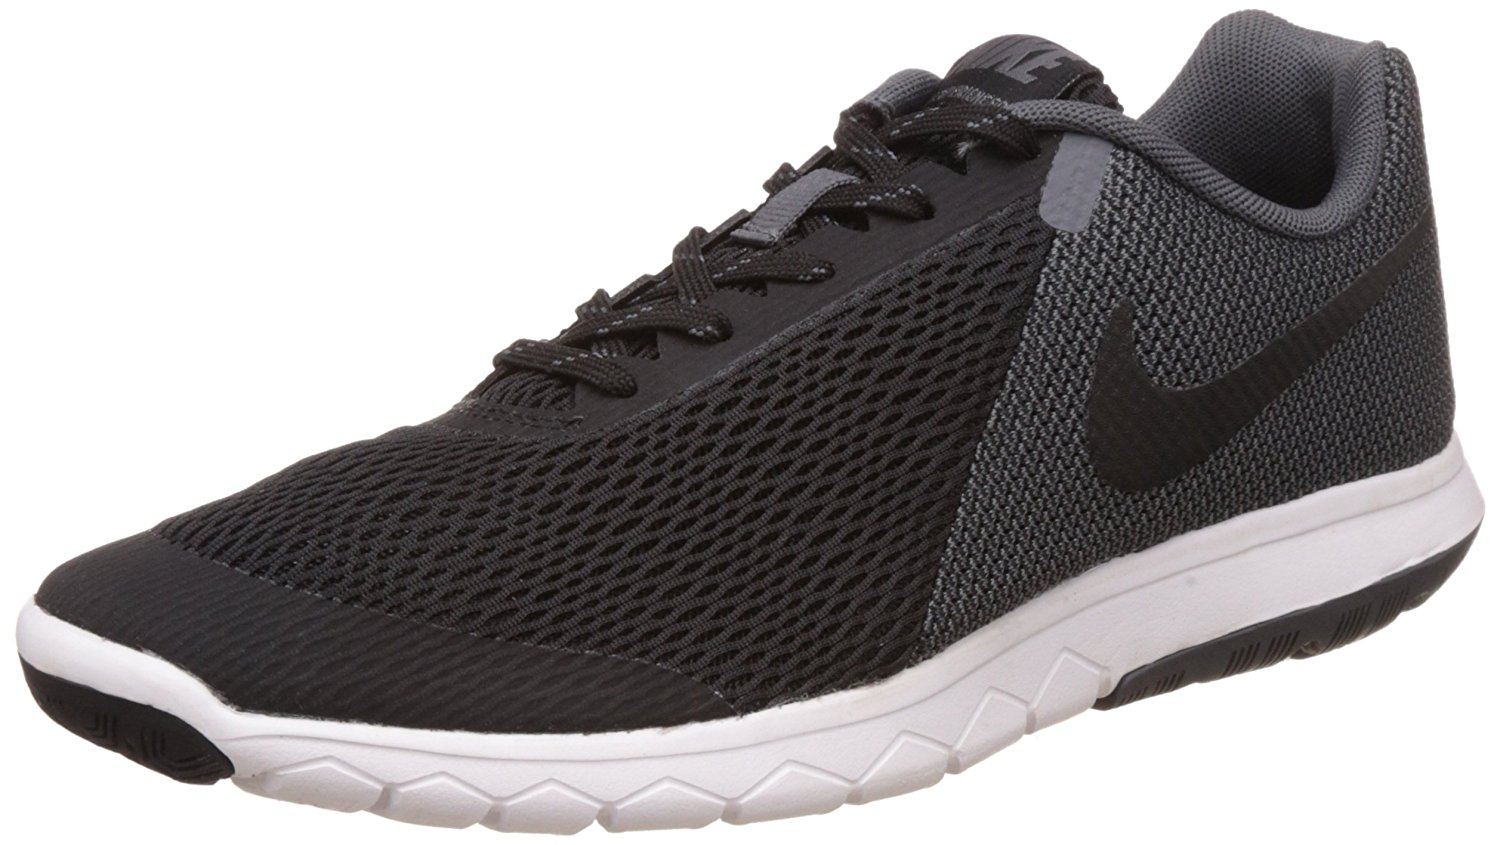 84c69a90a032 Buy Nike Flex Experience RN 4 Running Shoe in Cheap Price on Alibaba.com